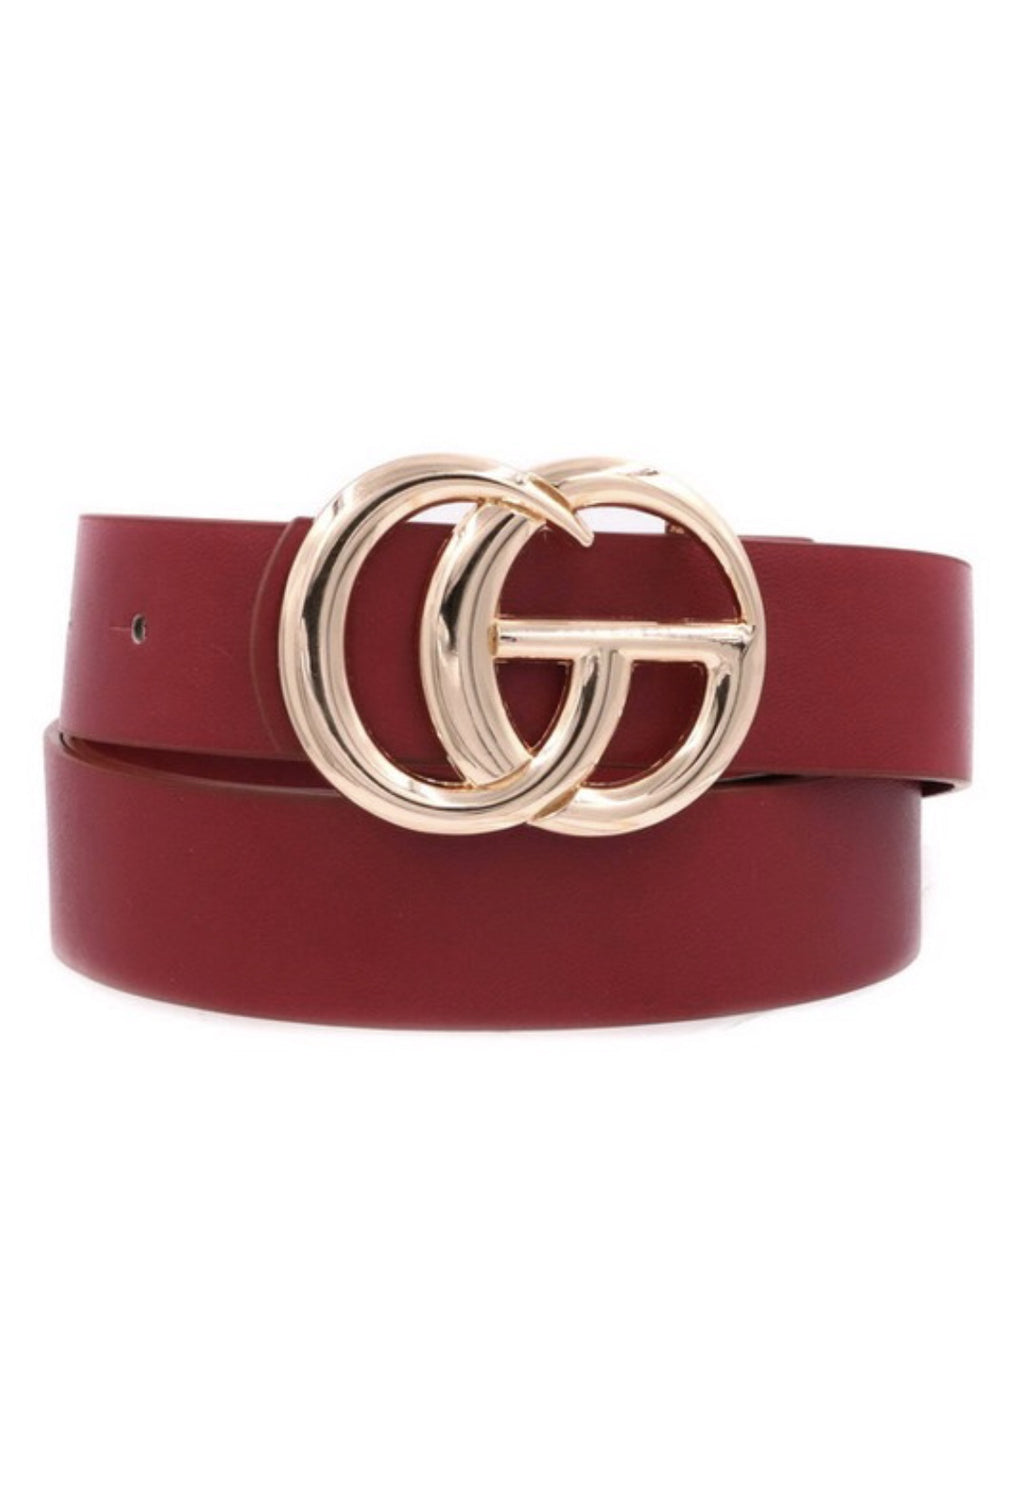 Snatched Belt - Burgundy